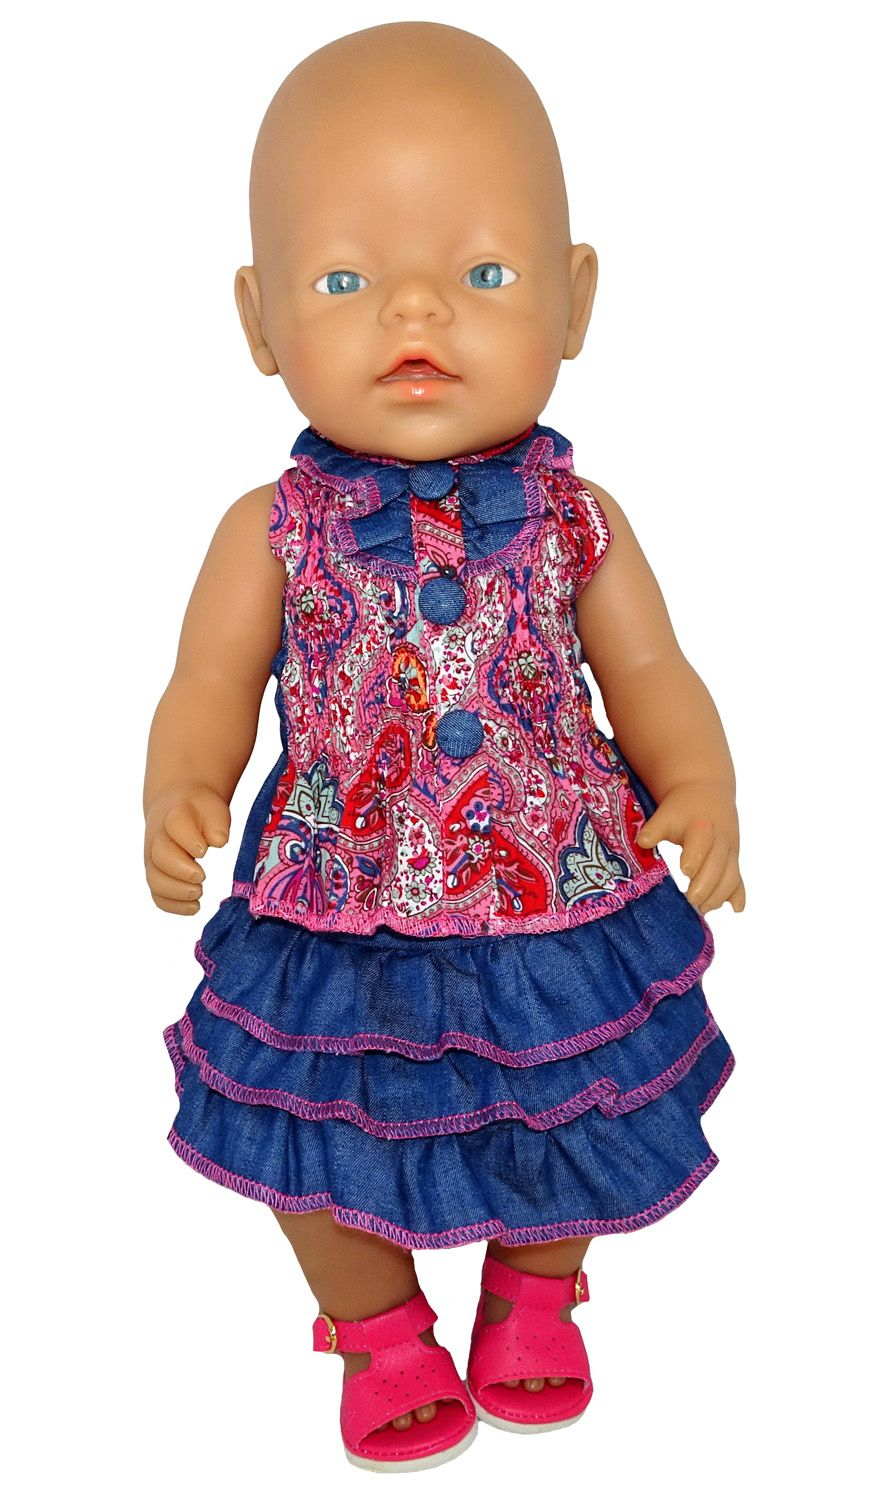 Paisley Top & Skirt Girl doll clothes, Paisley, Doll clothes